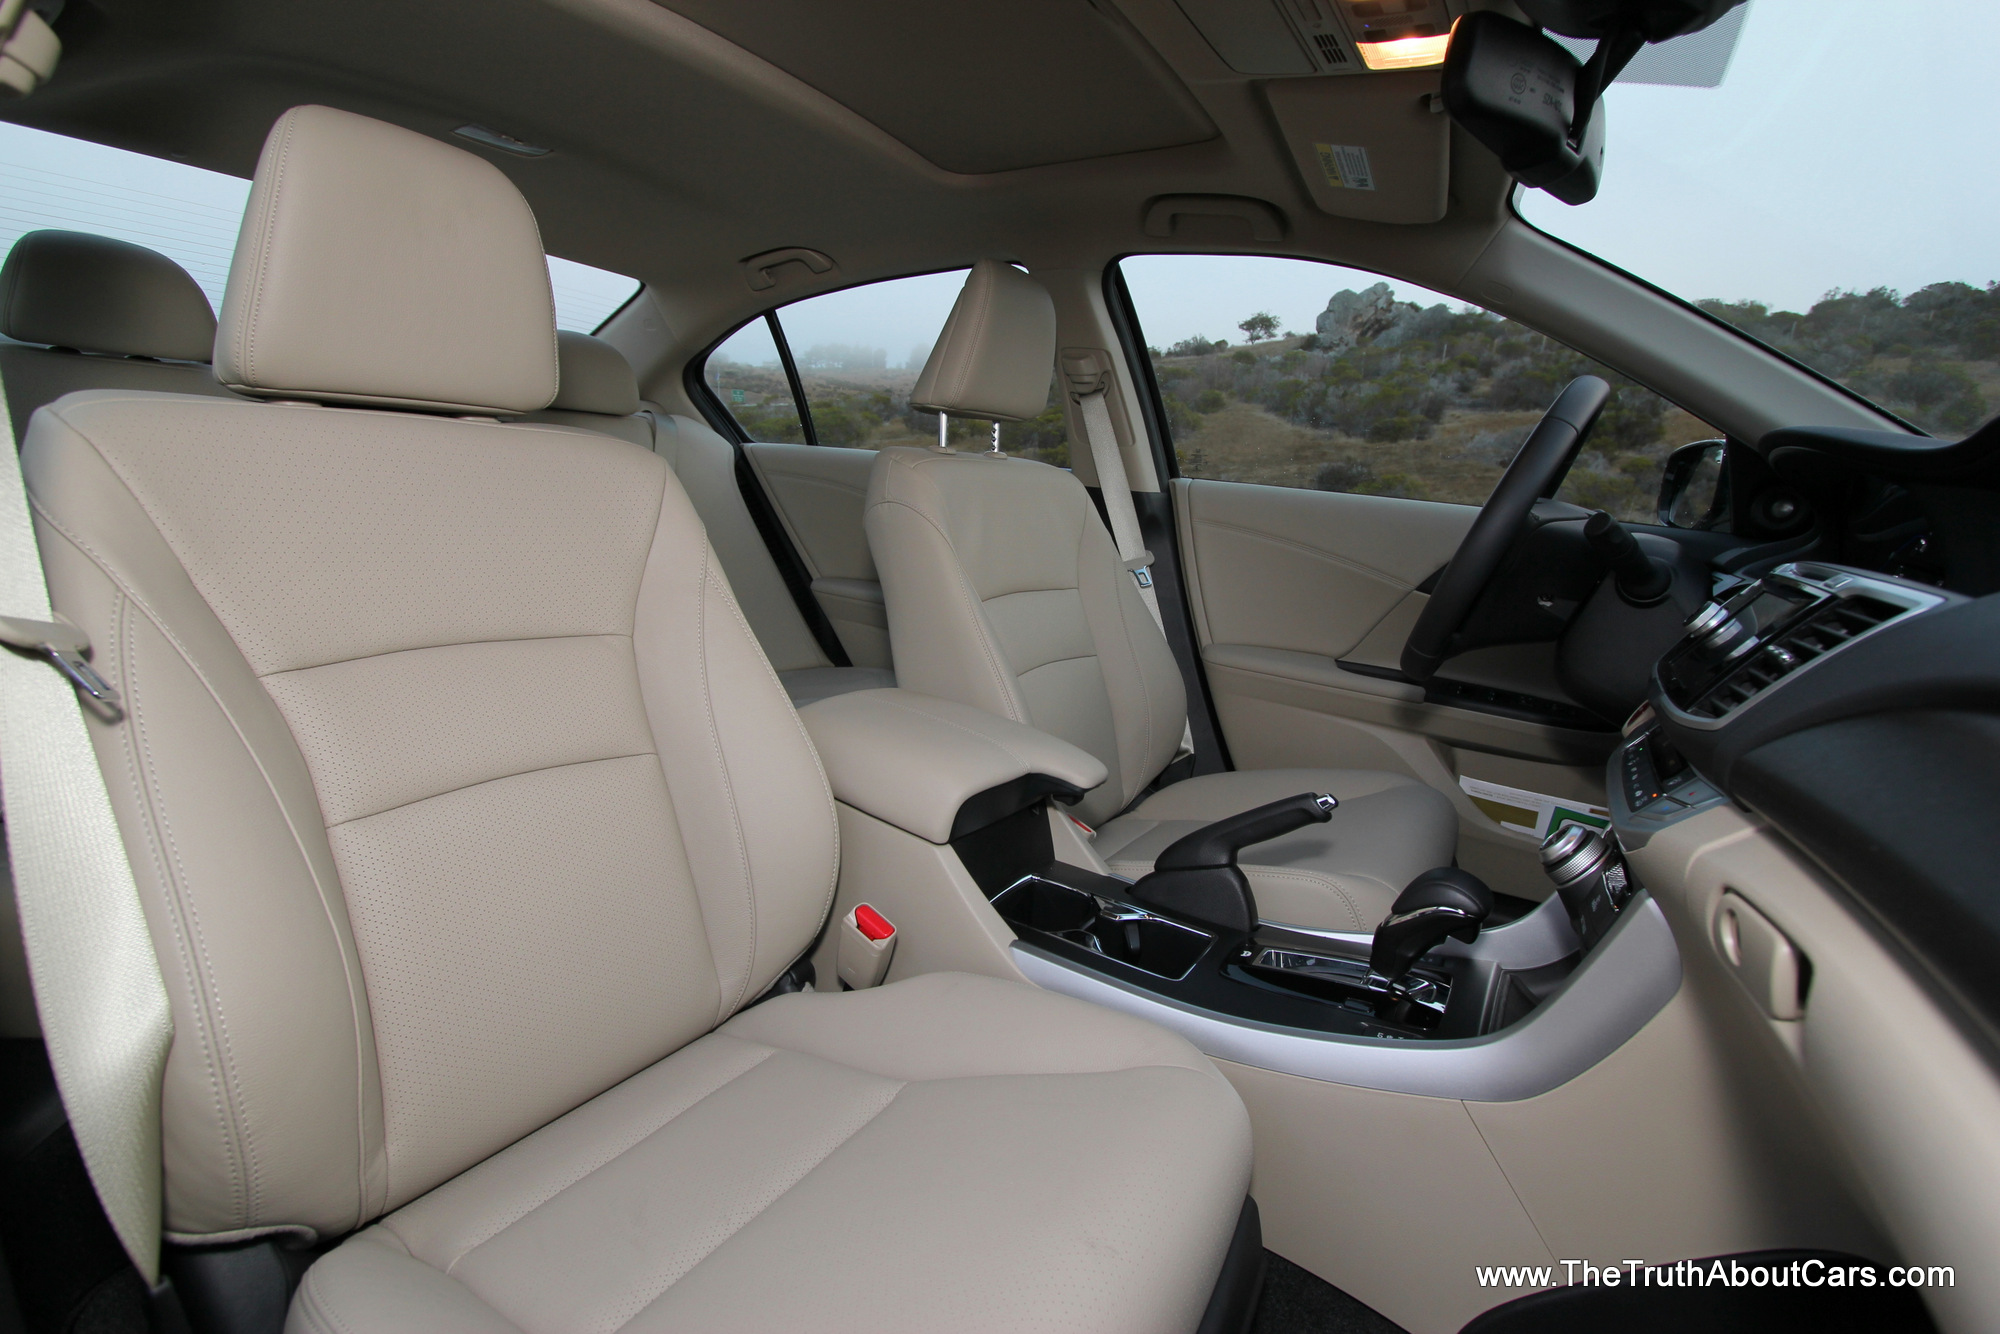 honda accord 2014 interior - photo #11